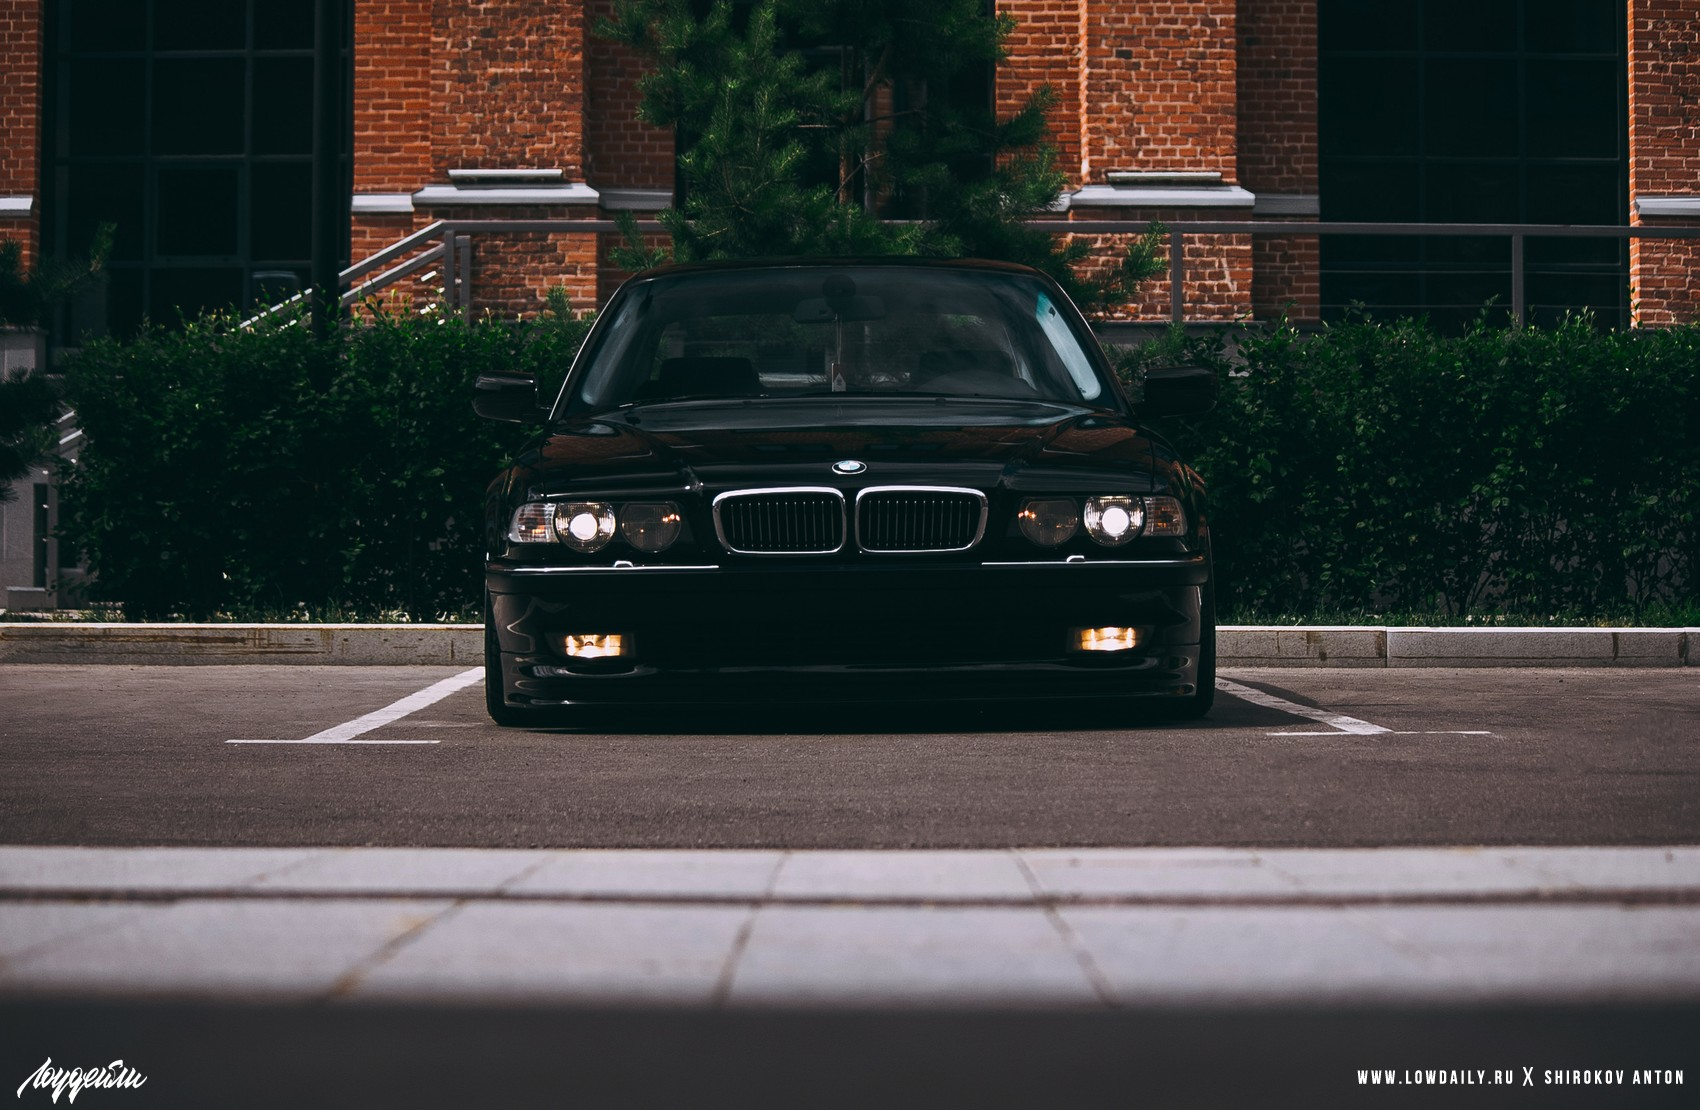 BMW E38 Lowdaily _MG_7020